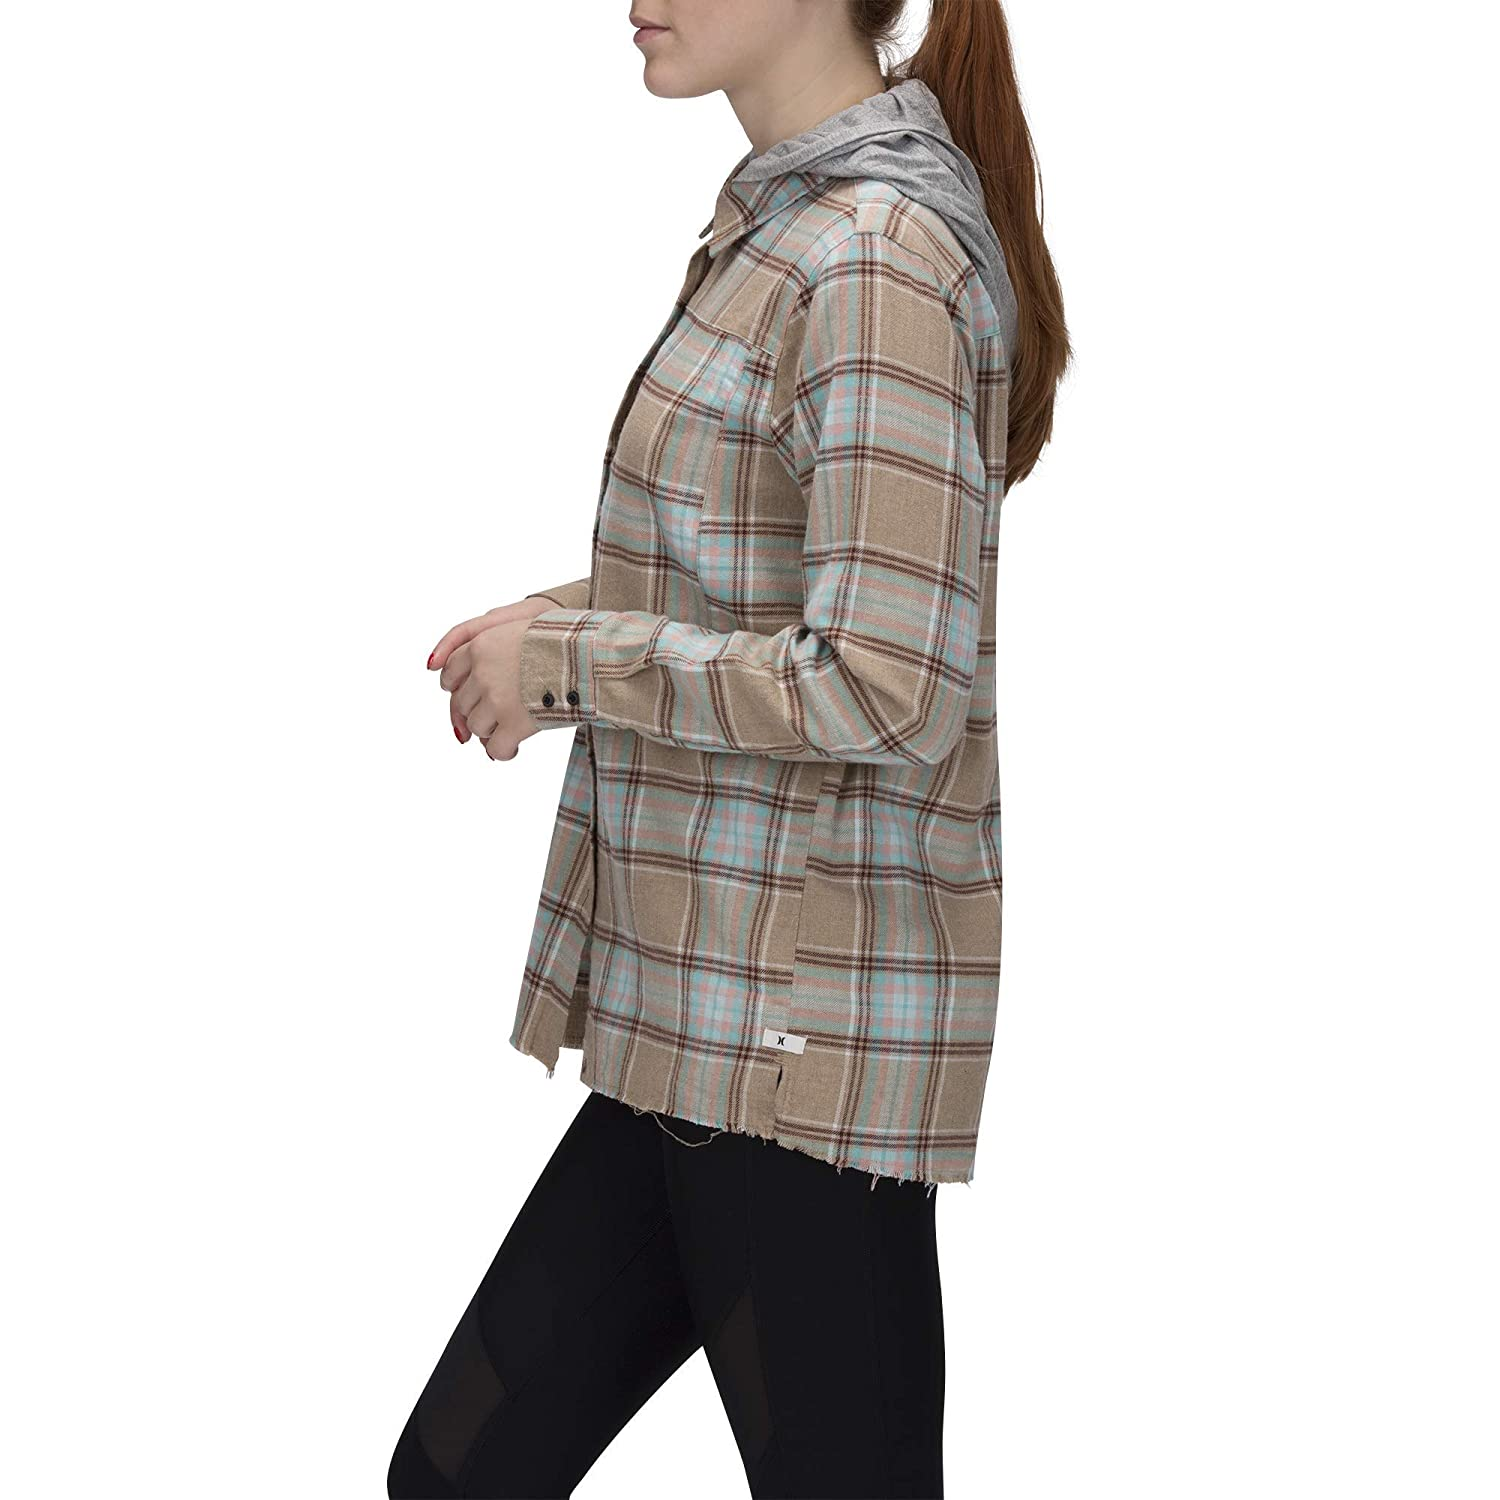 Hurley Womens Plaid Collared Long Sleeve Button Down Shirt